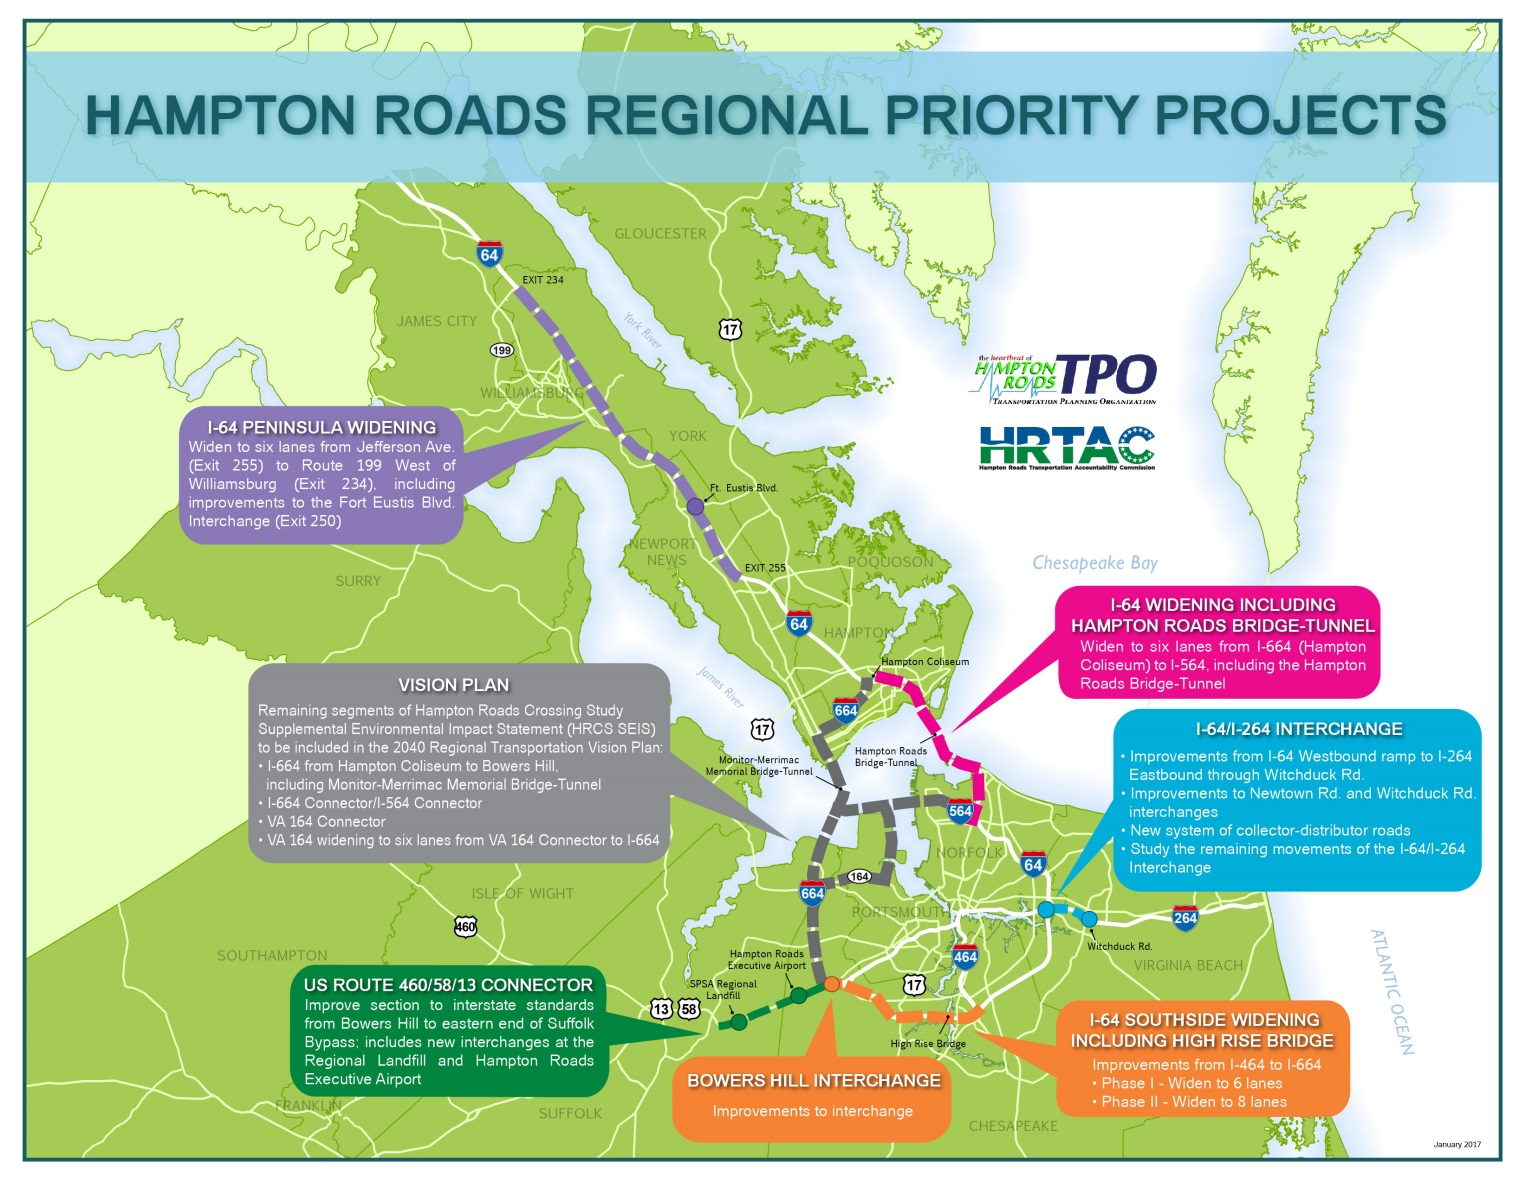 Hampton Roads Regional Priority Projects